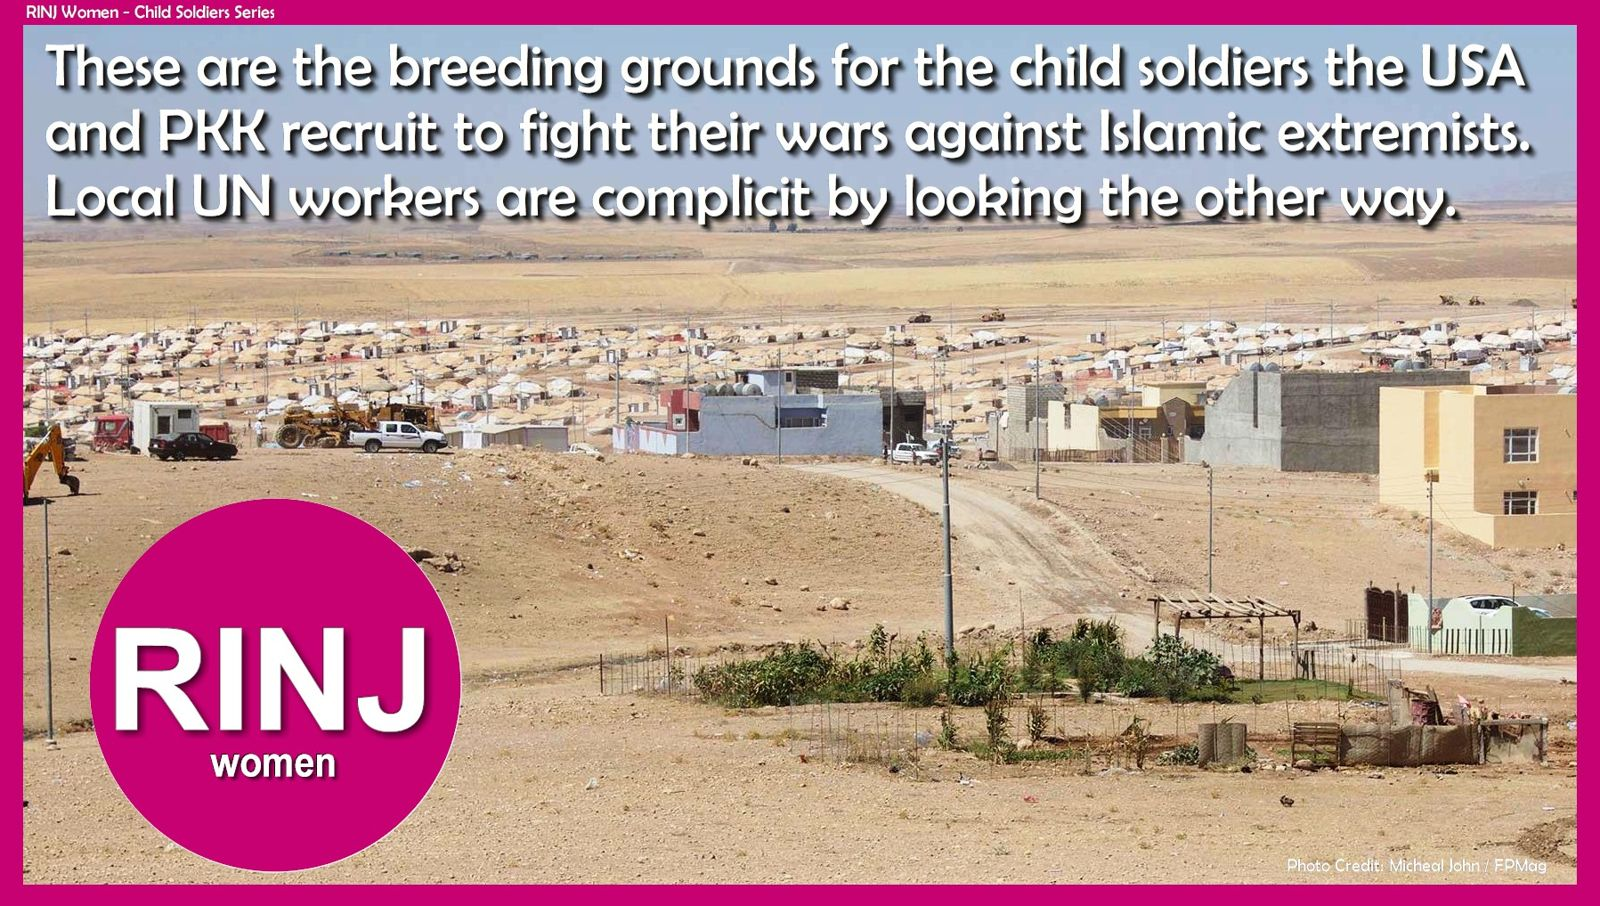 These are the breeding grounds for the child soldiers the USA and PKK recruit to fight their wars against Islamic extremists. Local UN workers are complicit by looking the other way.